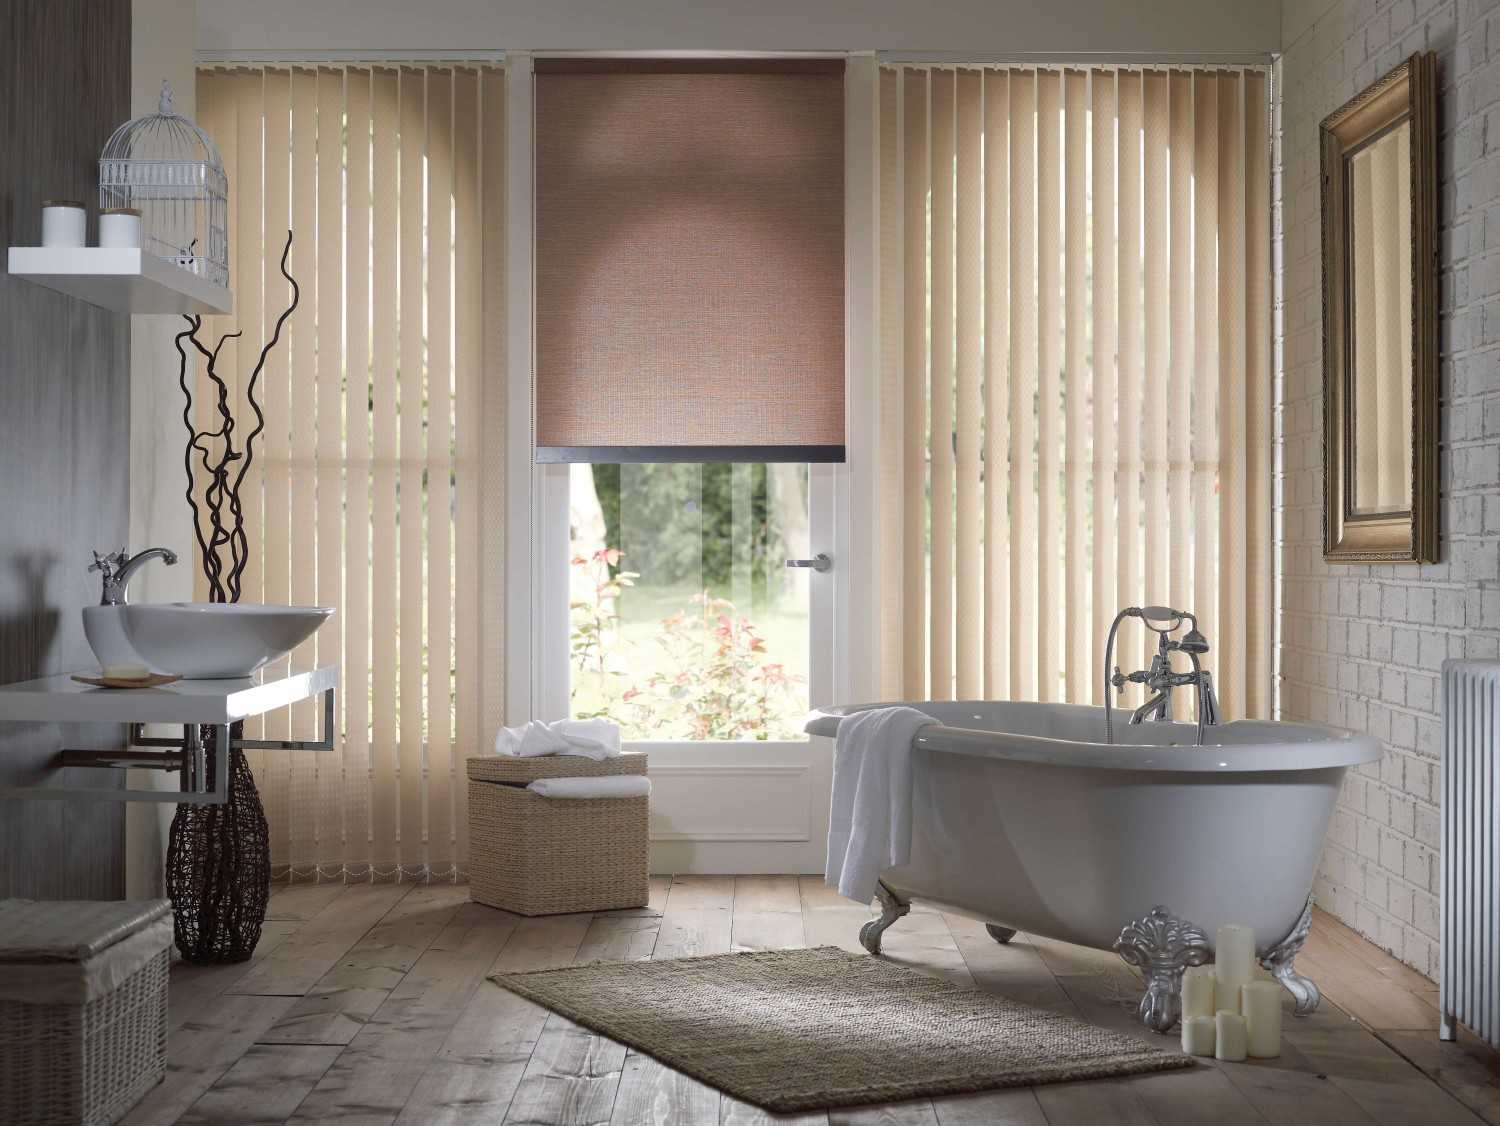 Vertical blind di kamar mandi (Sumber: www.stortblinds.co.uk)